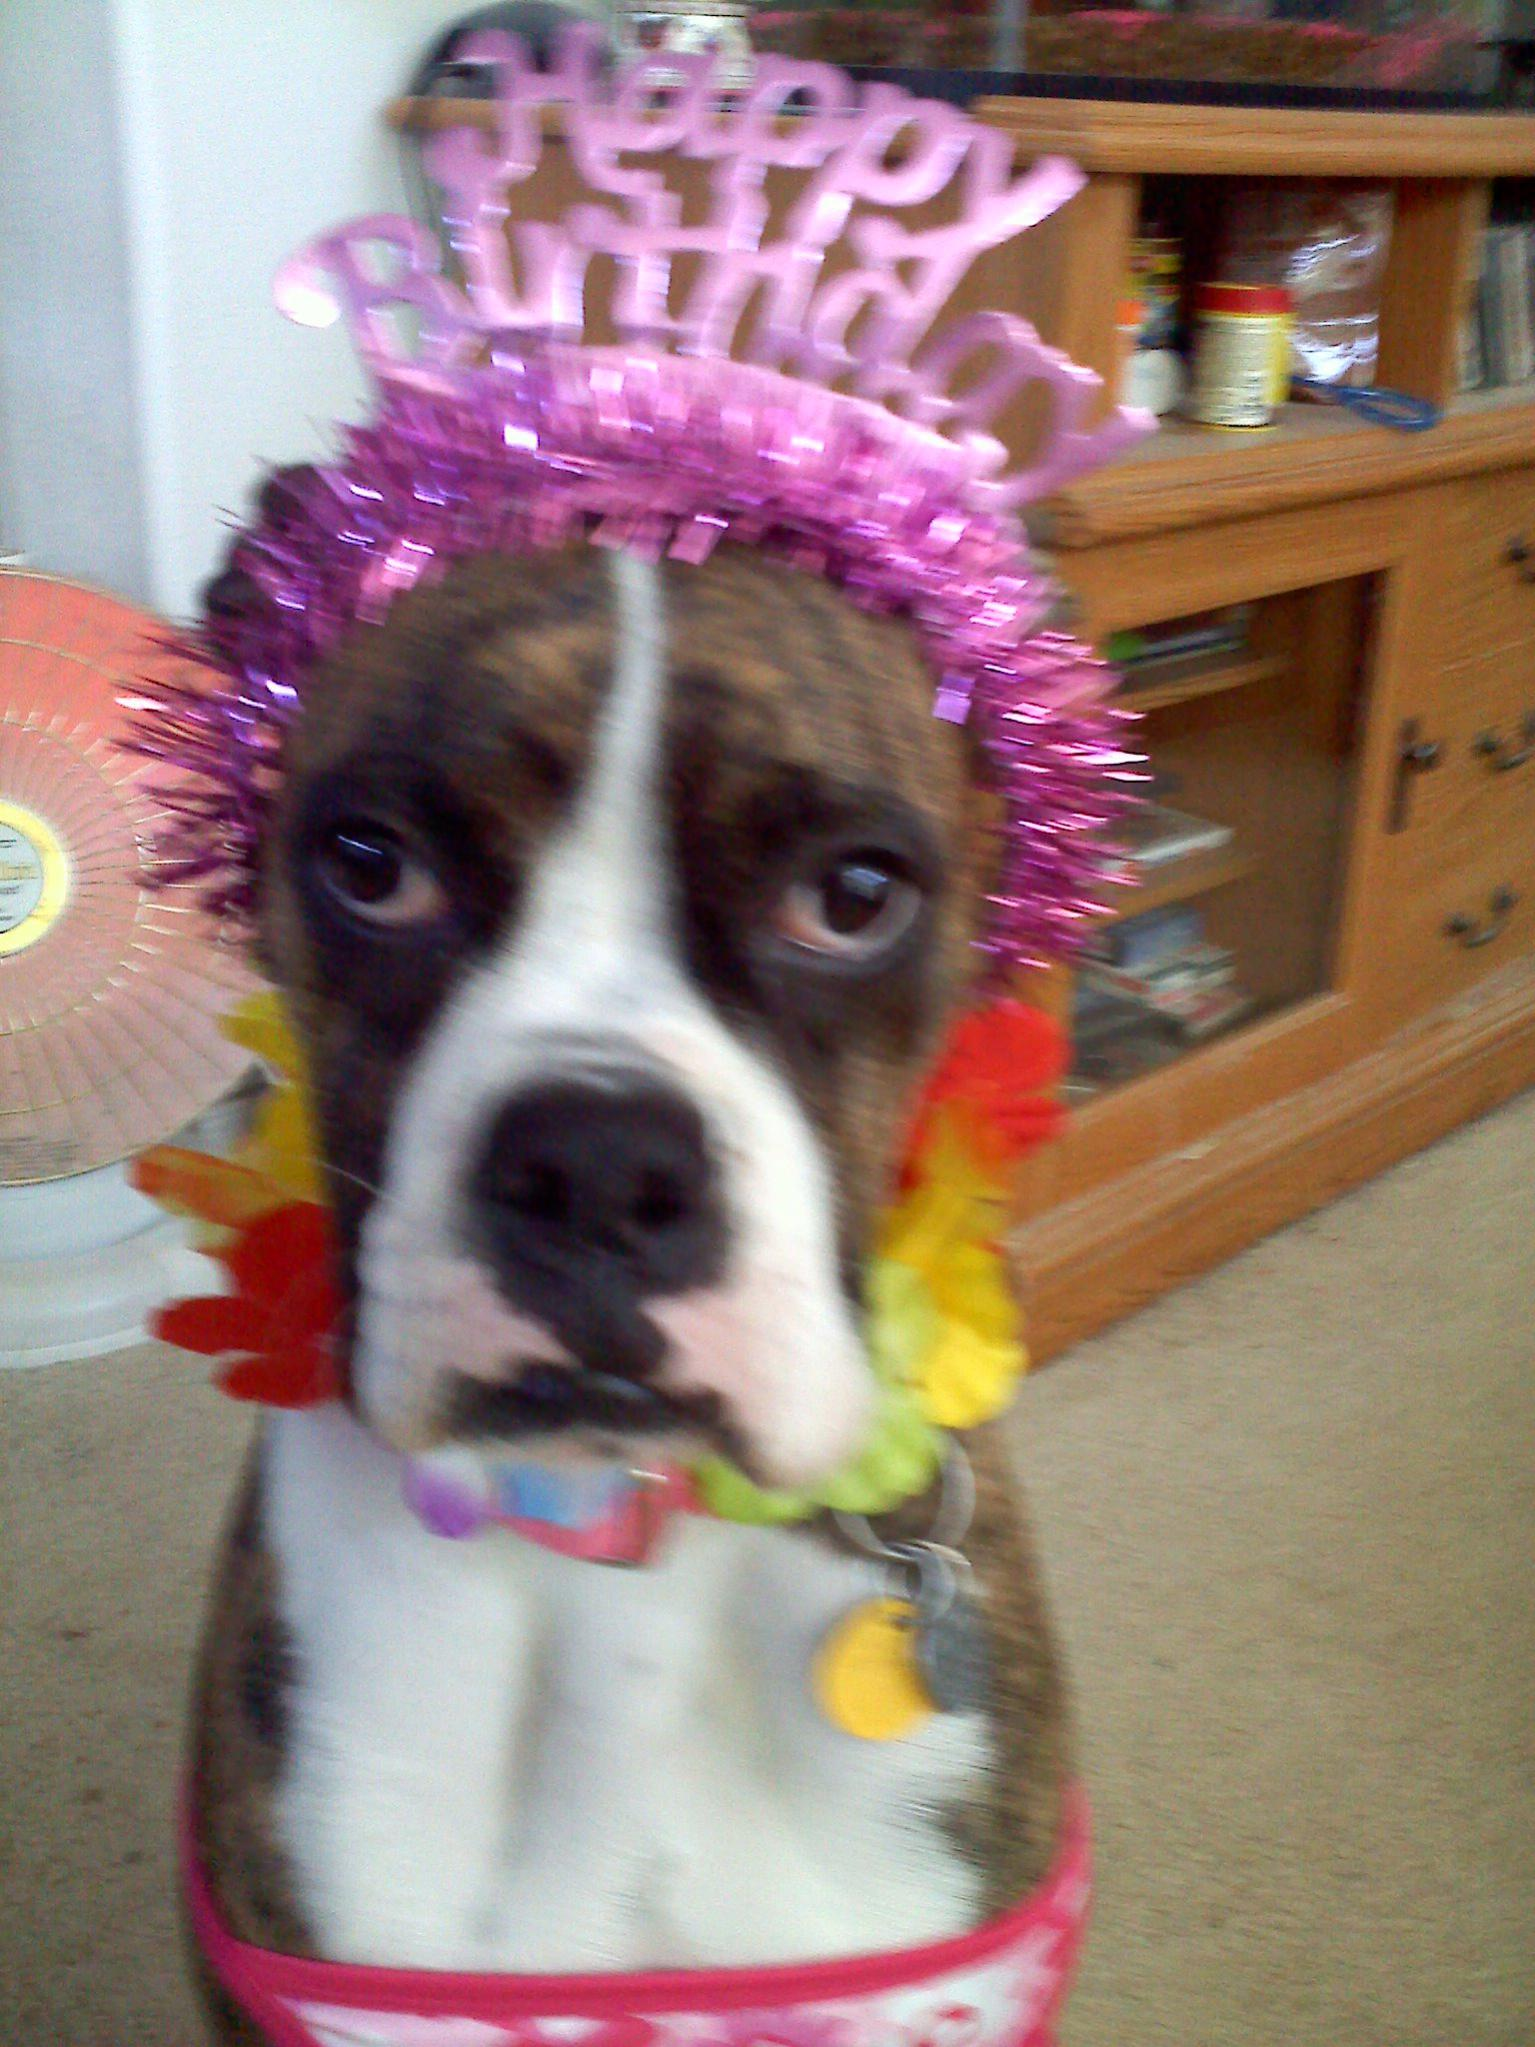 happy birthday boxer picture ; happy%2520birthday%2520boxer%2520dog%2520;%252016490d1301843568-happy-birthday-abby-20110403075810